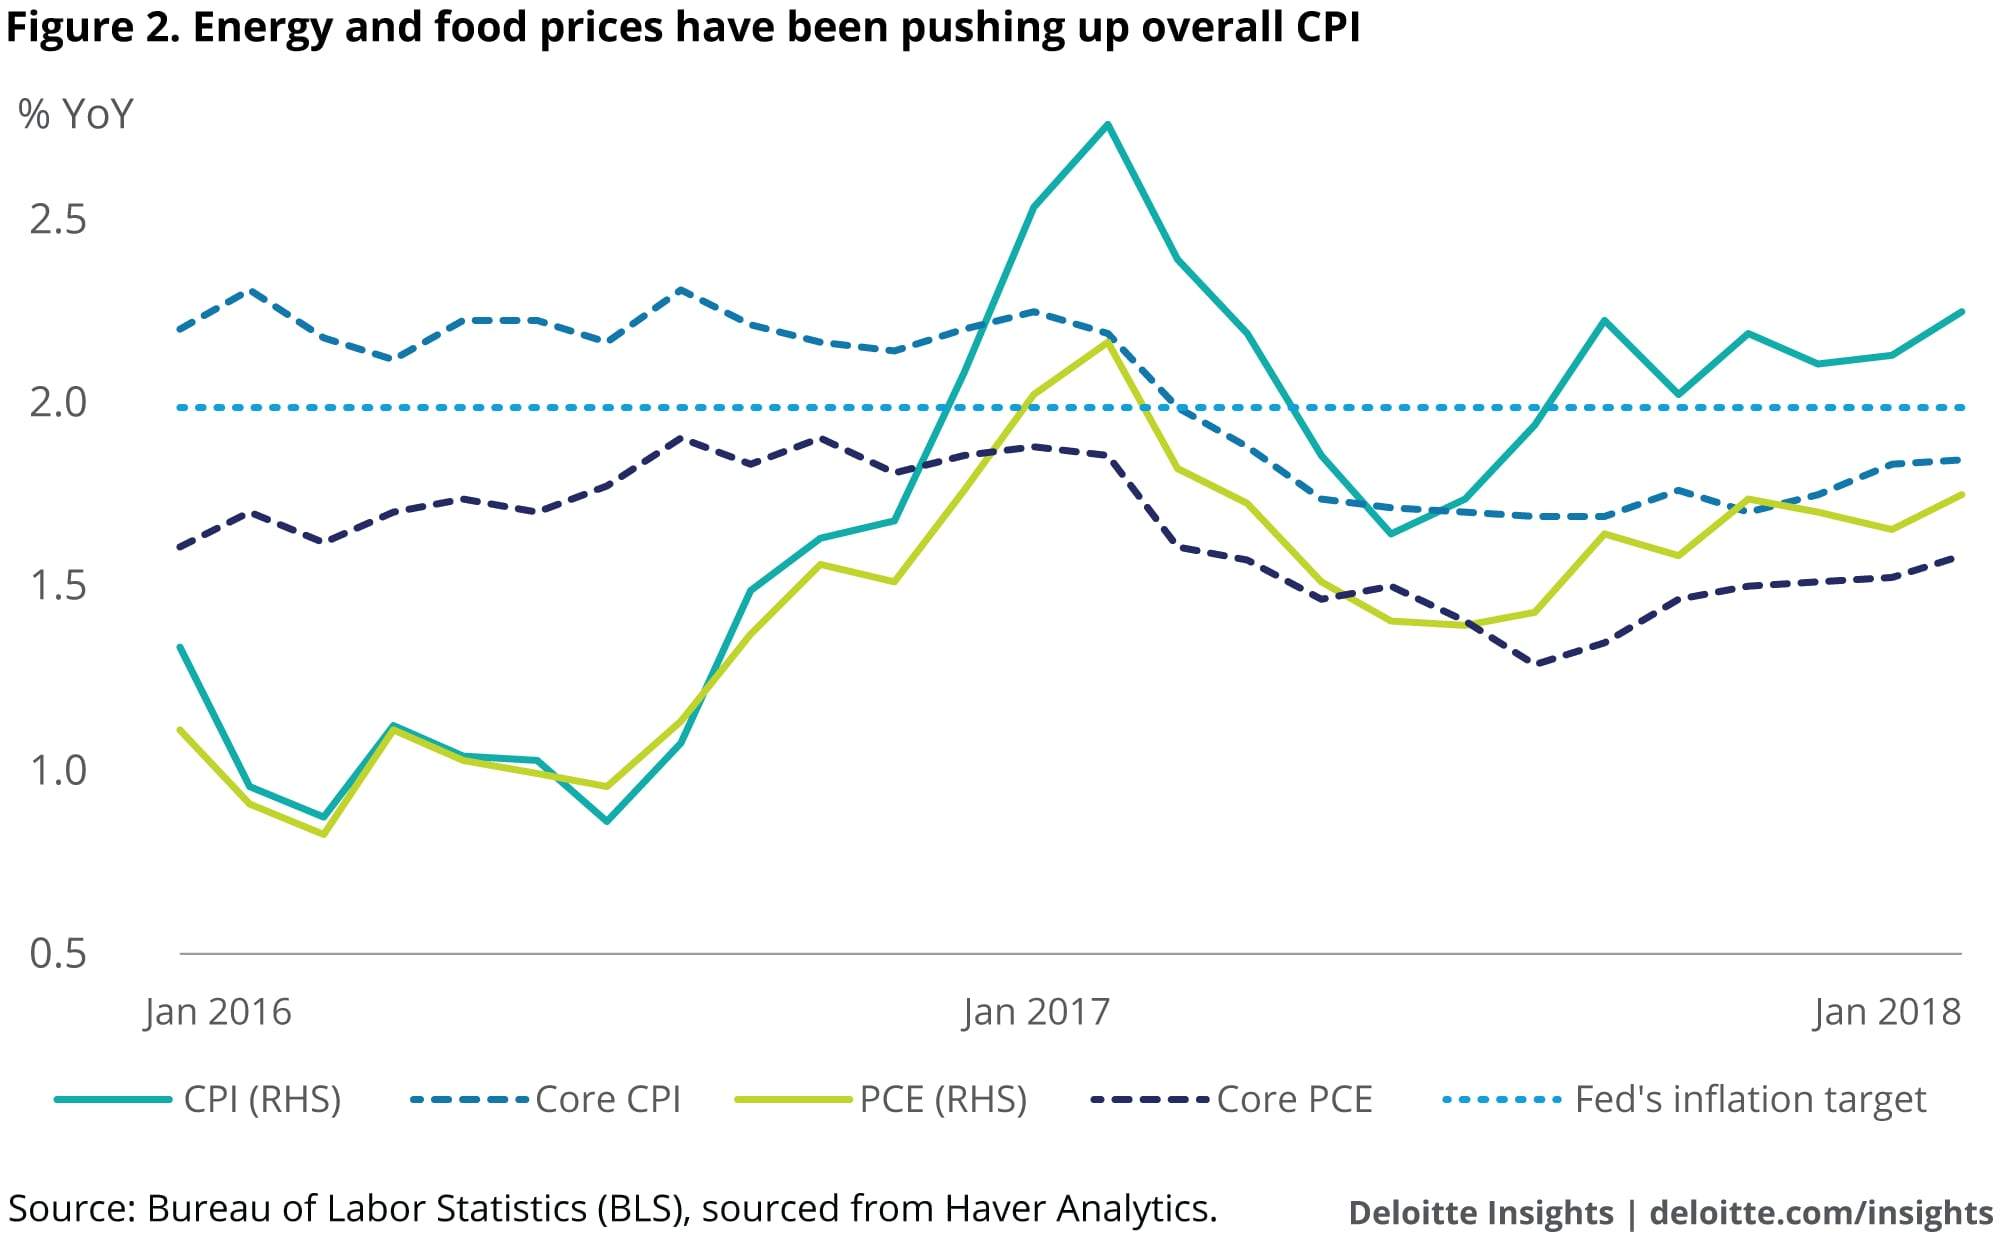 Energy and food prices have been pushing up overall CPI